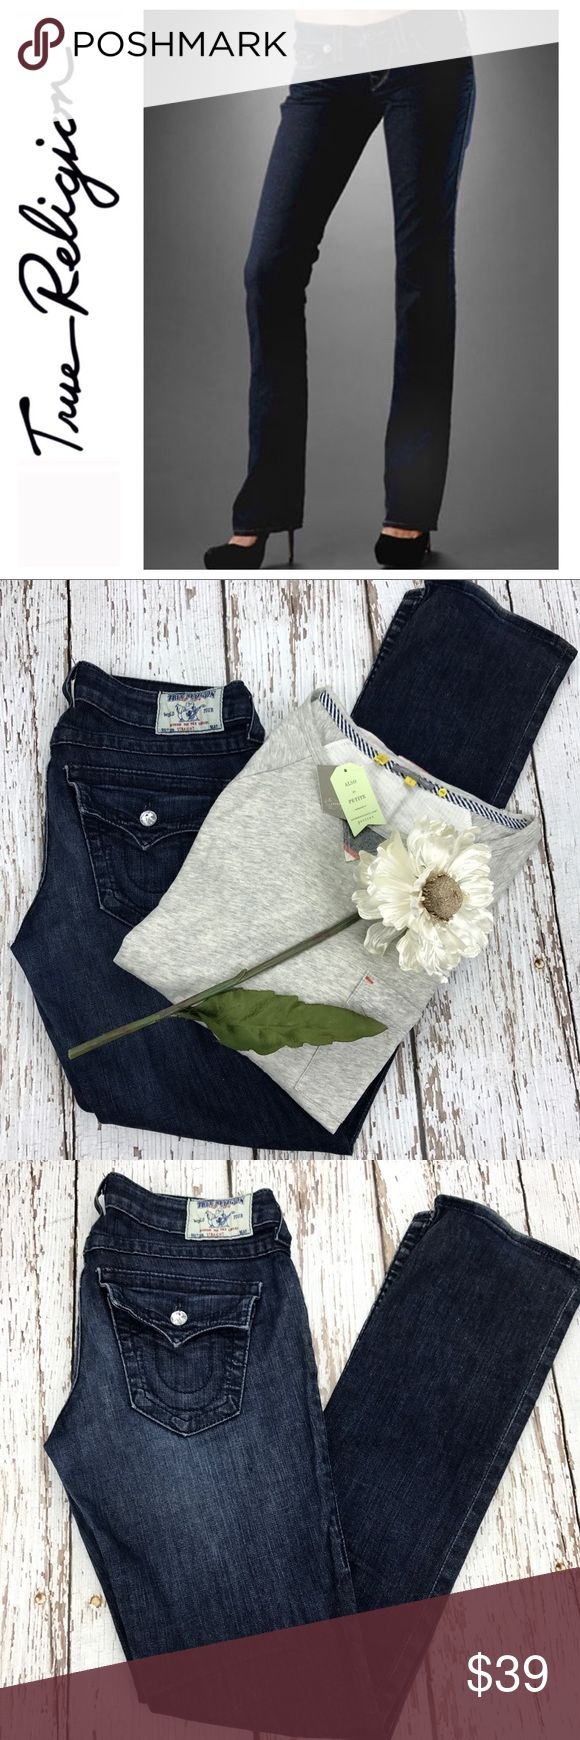 "💕SALE💕 True Religion Straight Leg Premium Denim Fabulous 💕 True Religion Straight Leg Premium Denim 32 1/2"" Inseam 7 1/2"" Rise True Religion Jeans Straight Leg"